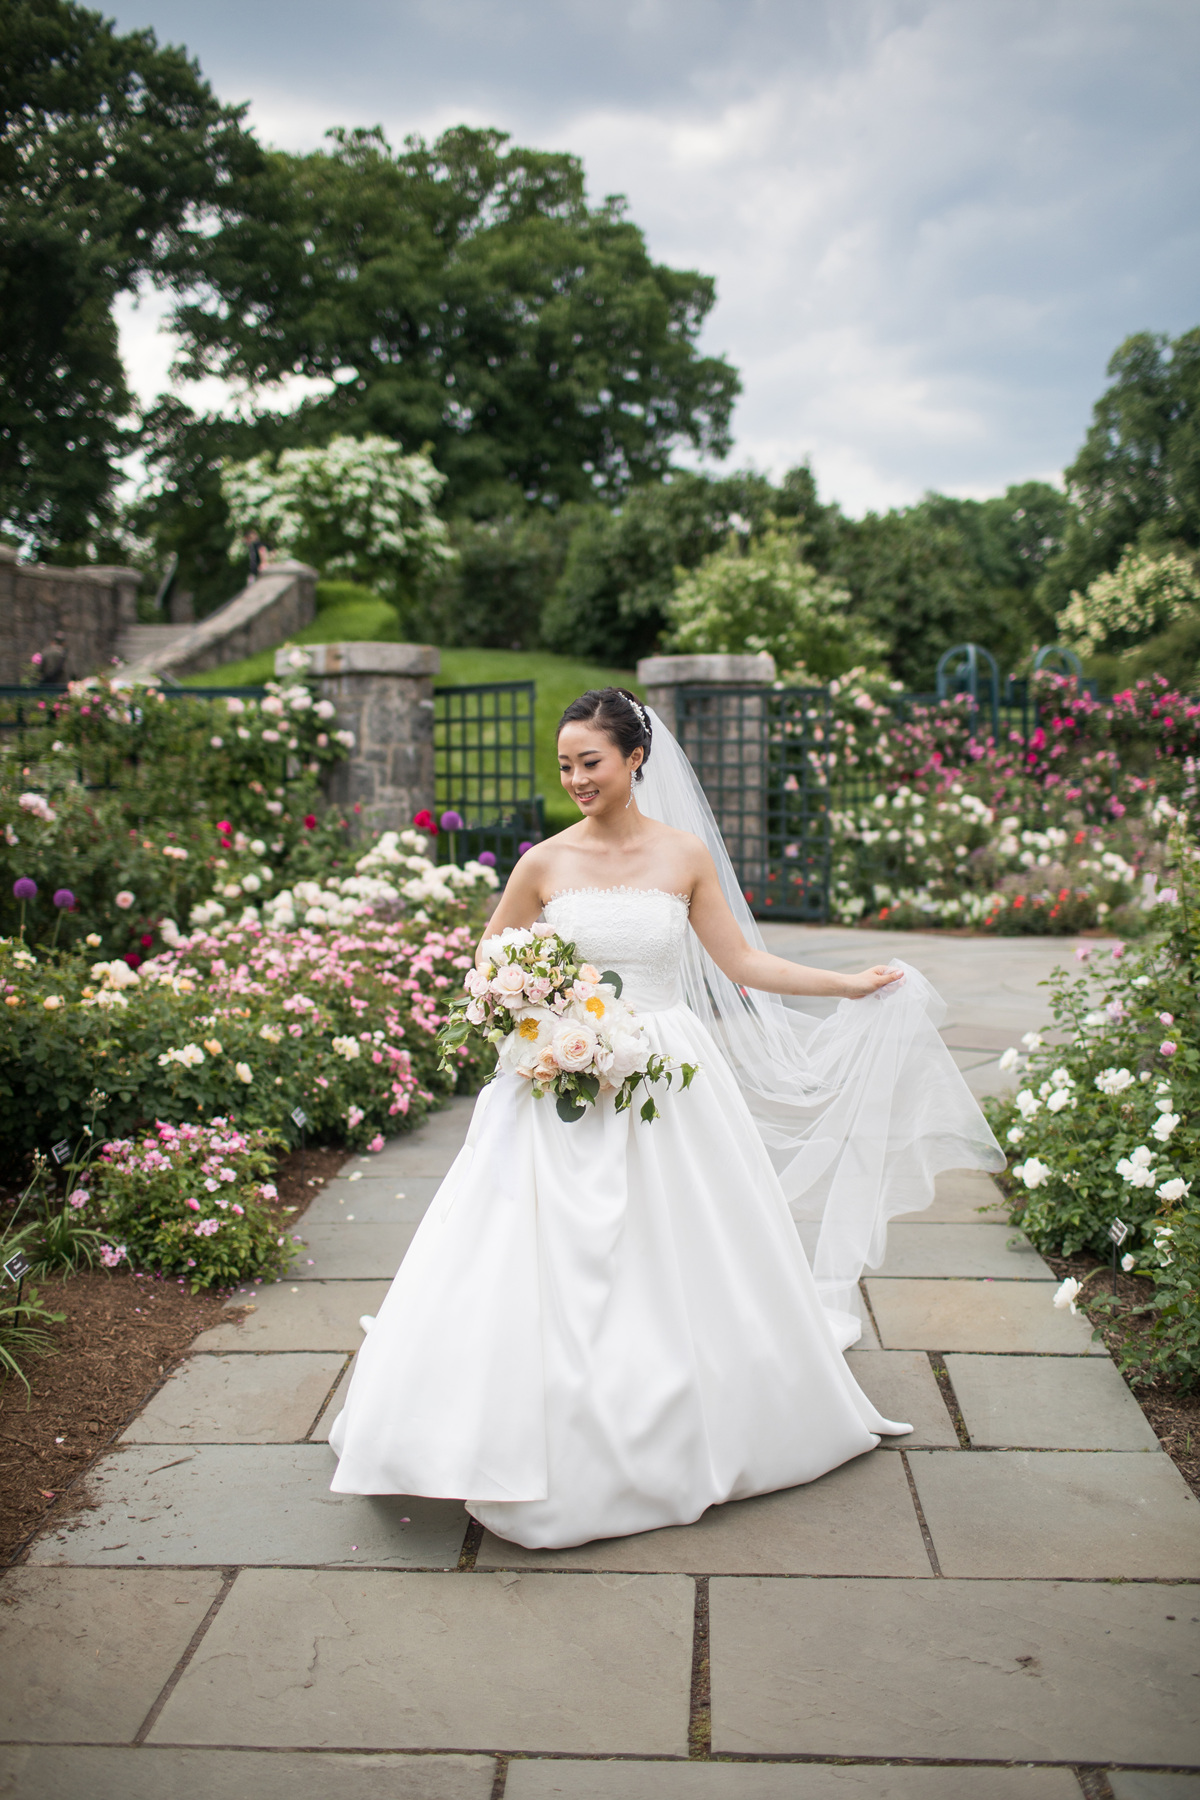 New york botanical garden wedding rey paul weddings - New york botanical garden wedding ...